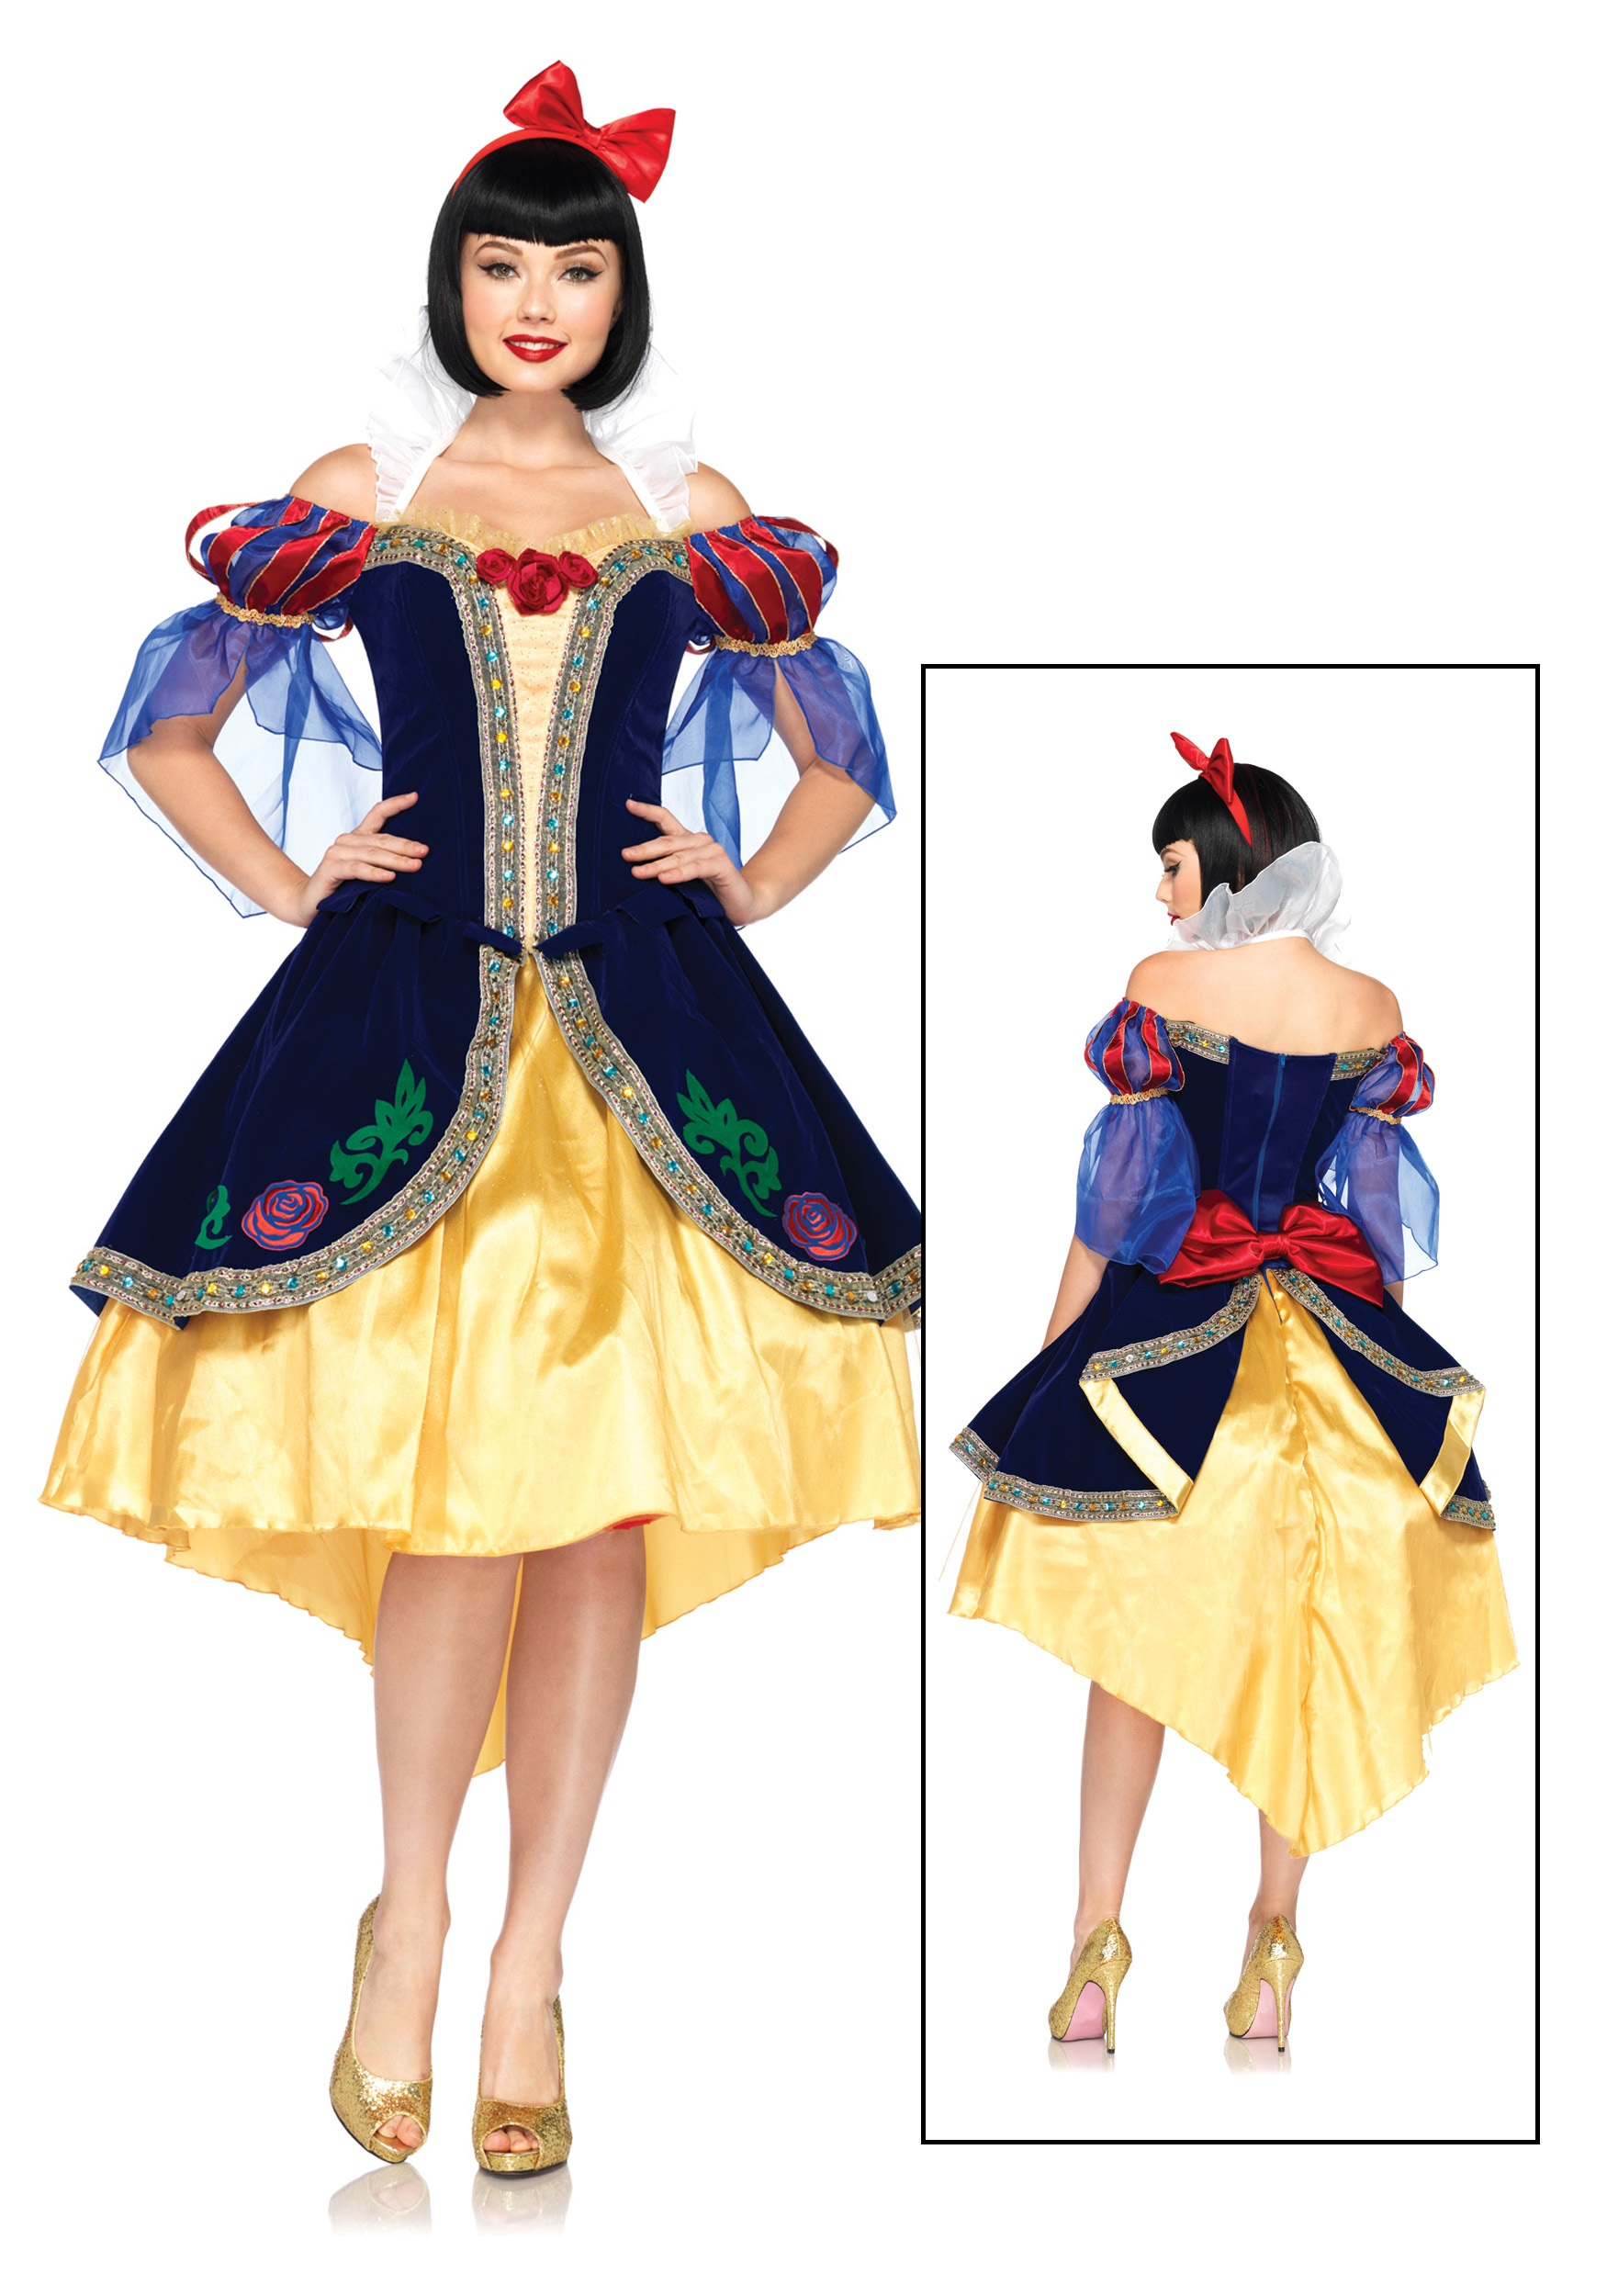 Adult Deluxe Snow Princess Snow White Cartoon Character Dress Up Costume